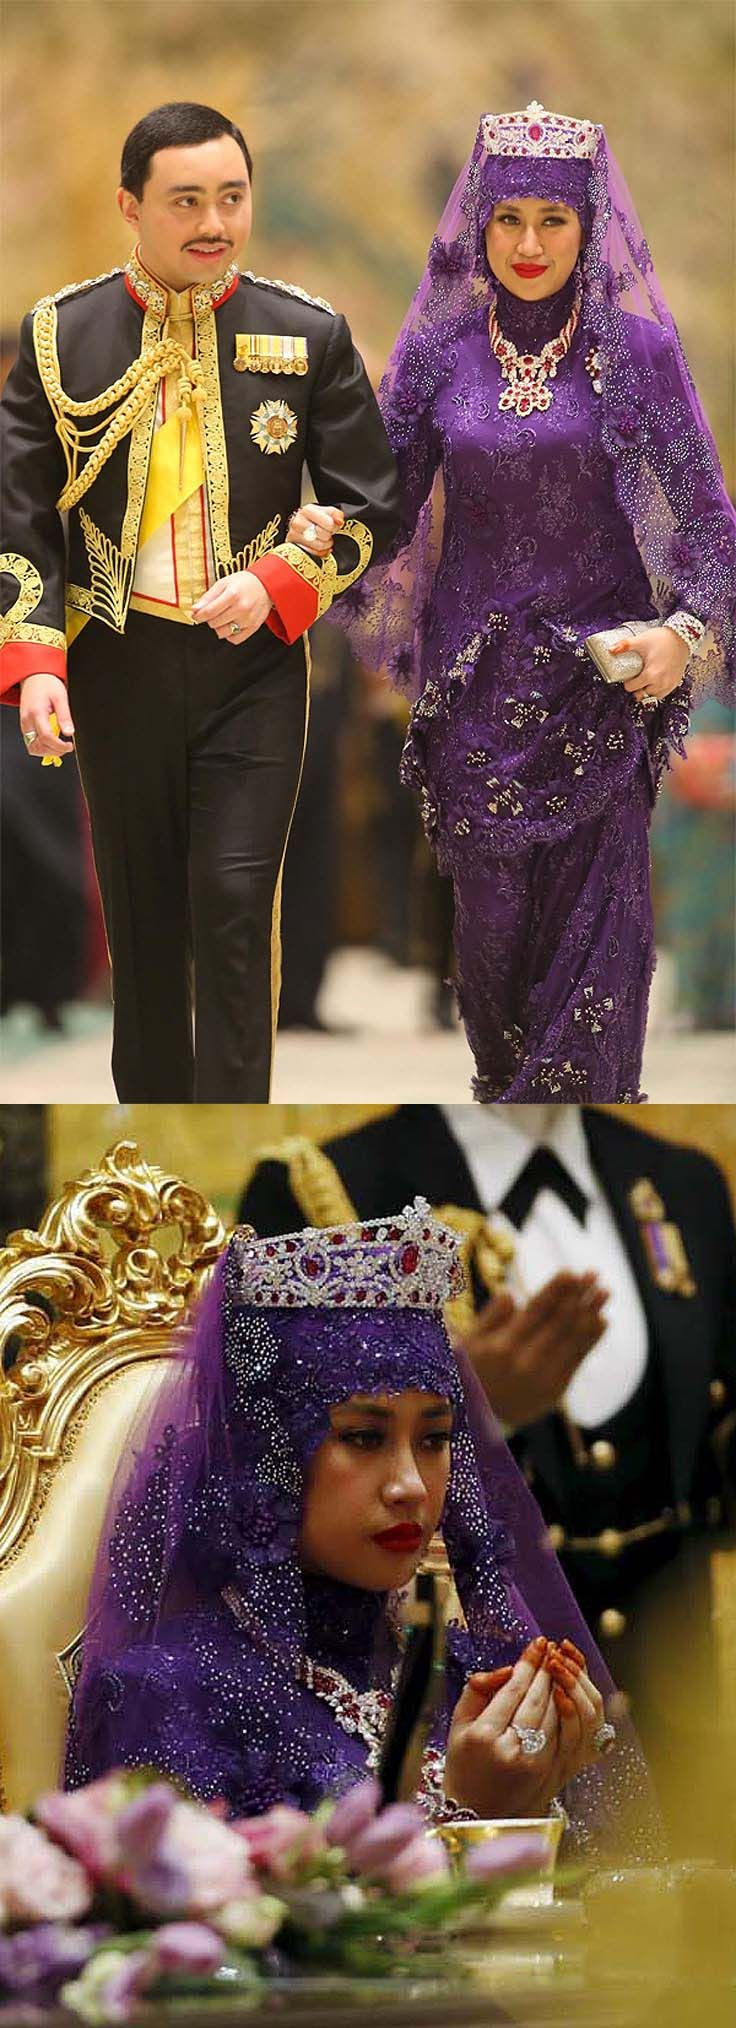 The newest member of the royal family changed into a beaded purple gown for the wedding banquet. She wore a bedazzled veil, along with a stunning diamond necklace set with tens of rubies, and a matching crown set with a scarlet gem the size of a 20-pence piece, a brooch, which was partly hidden by her veil, bracelets, a ruby and diamond ring and a huge diamond ring in a platinum setting.